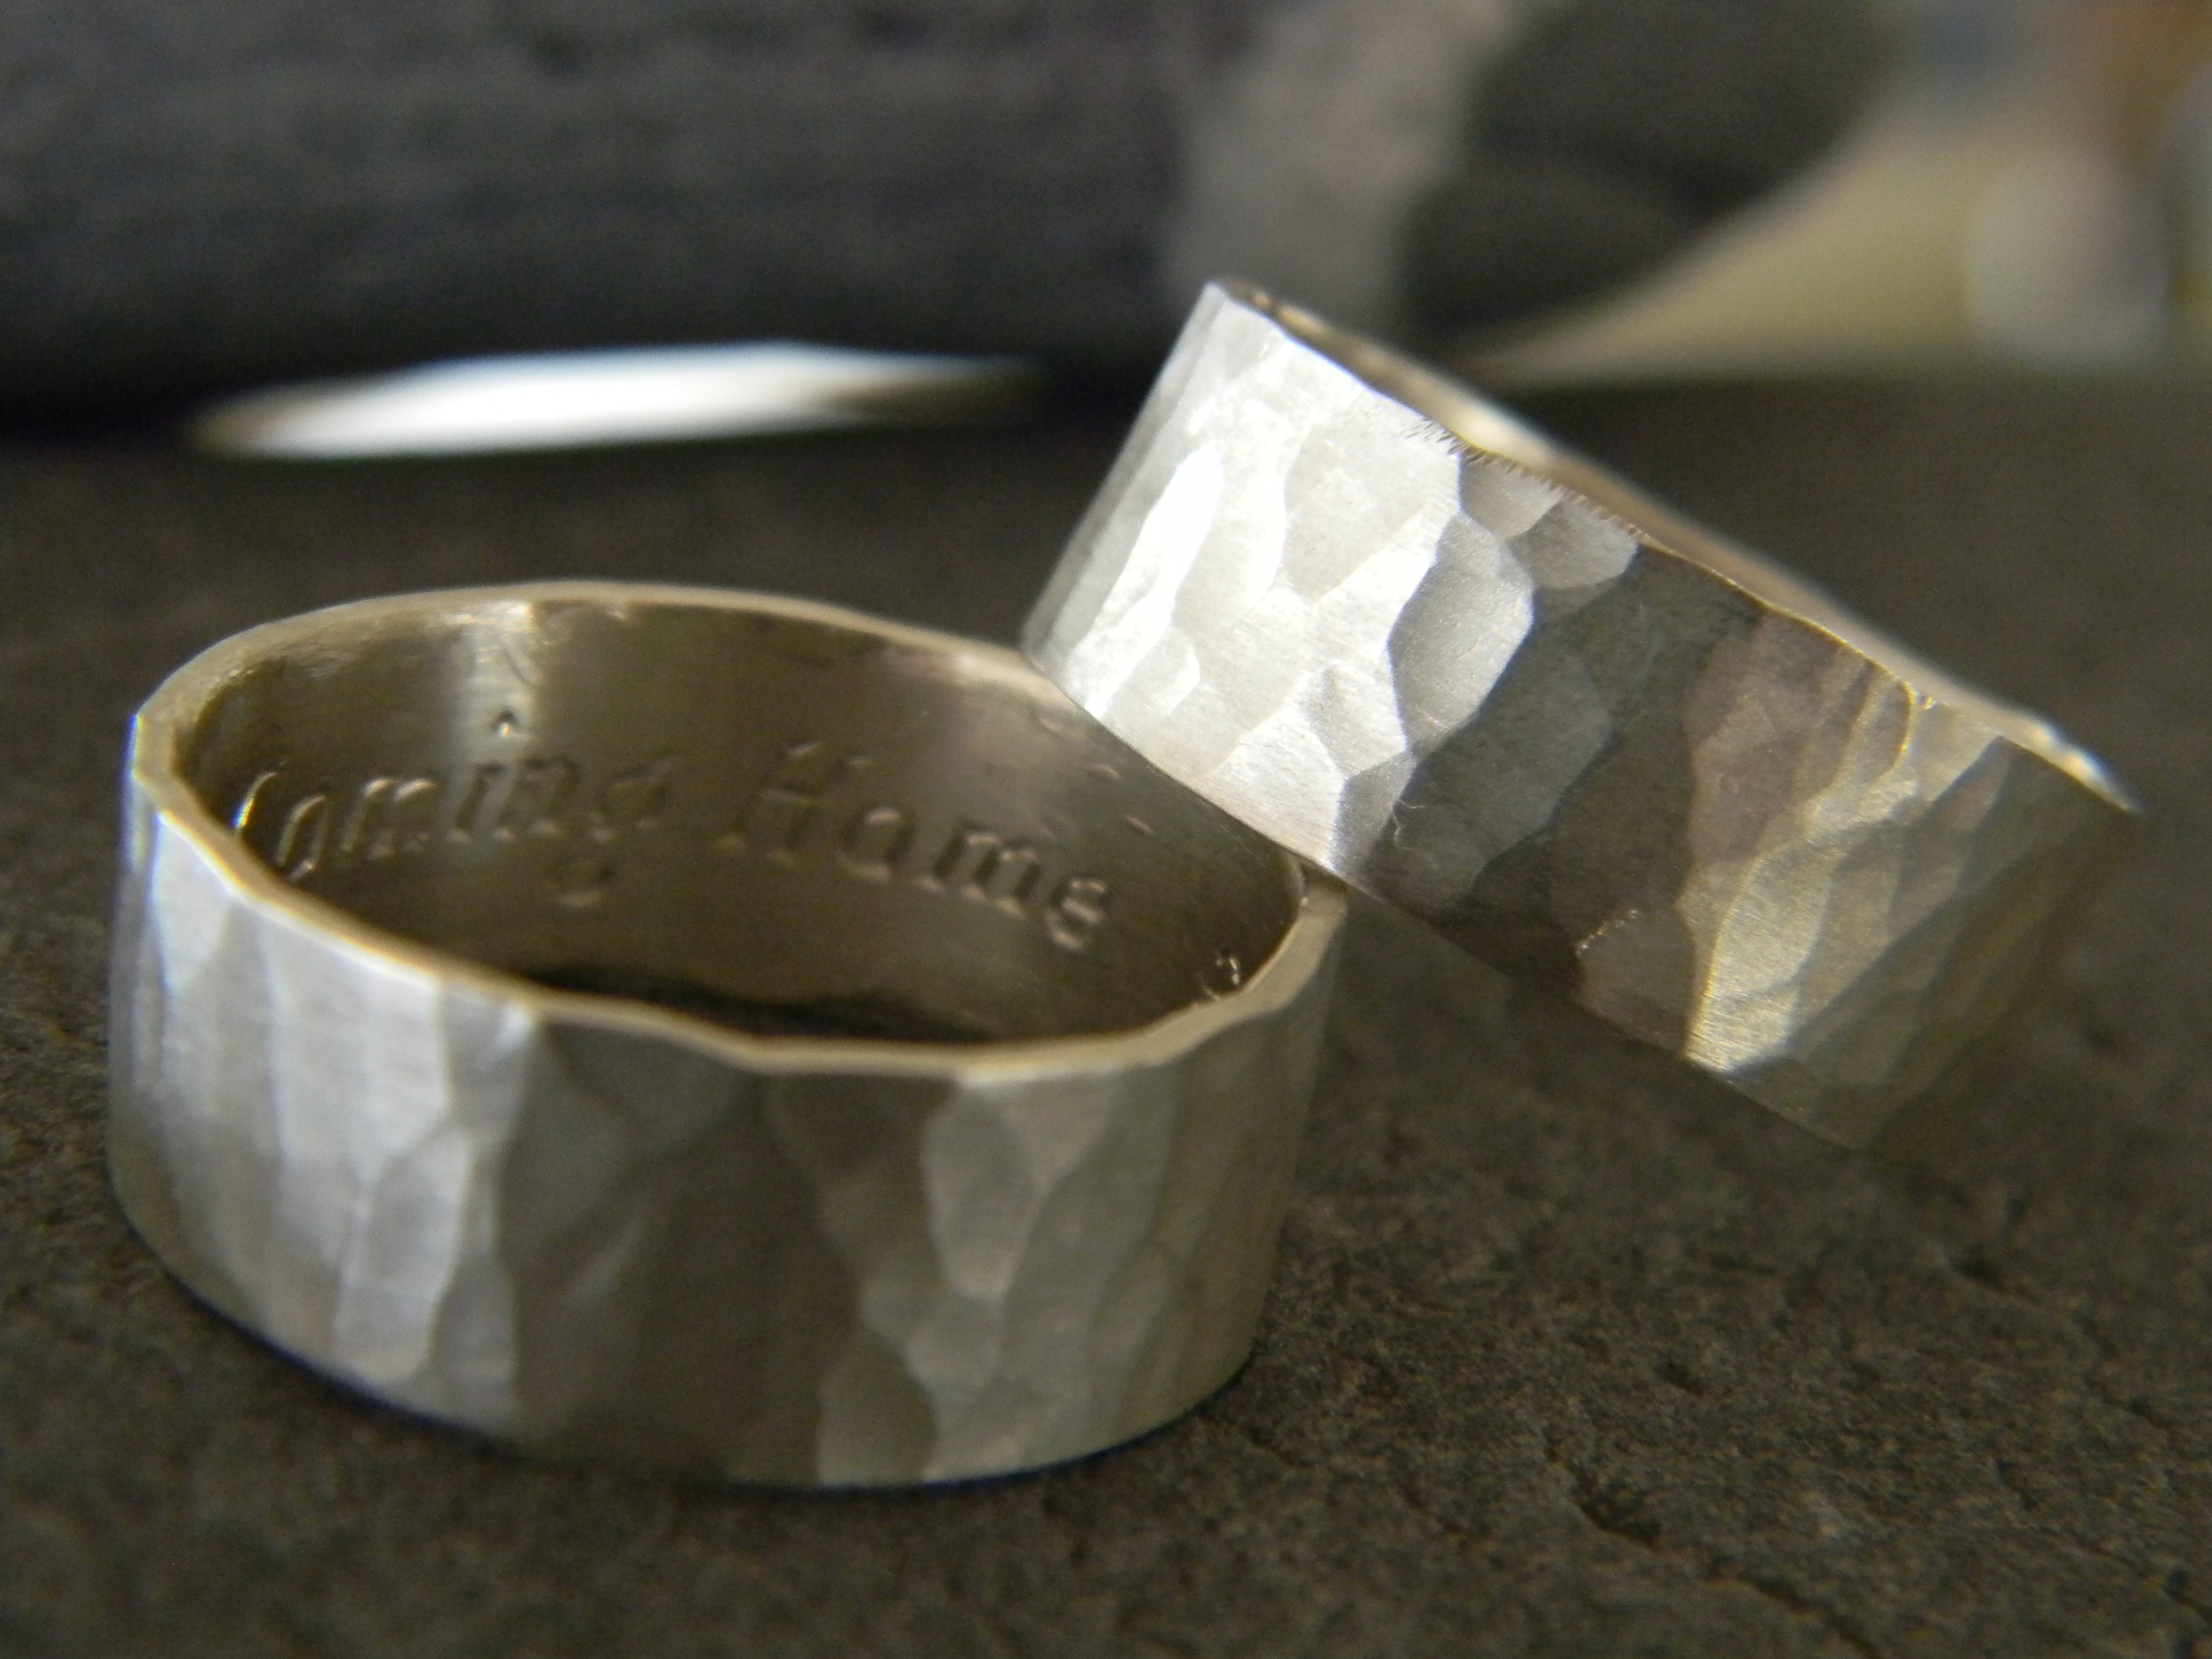 Simple hammered bands with a matte finish